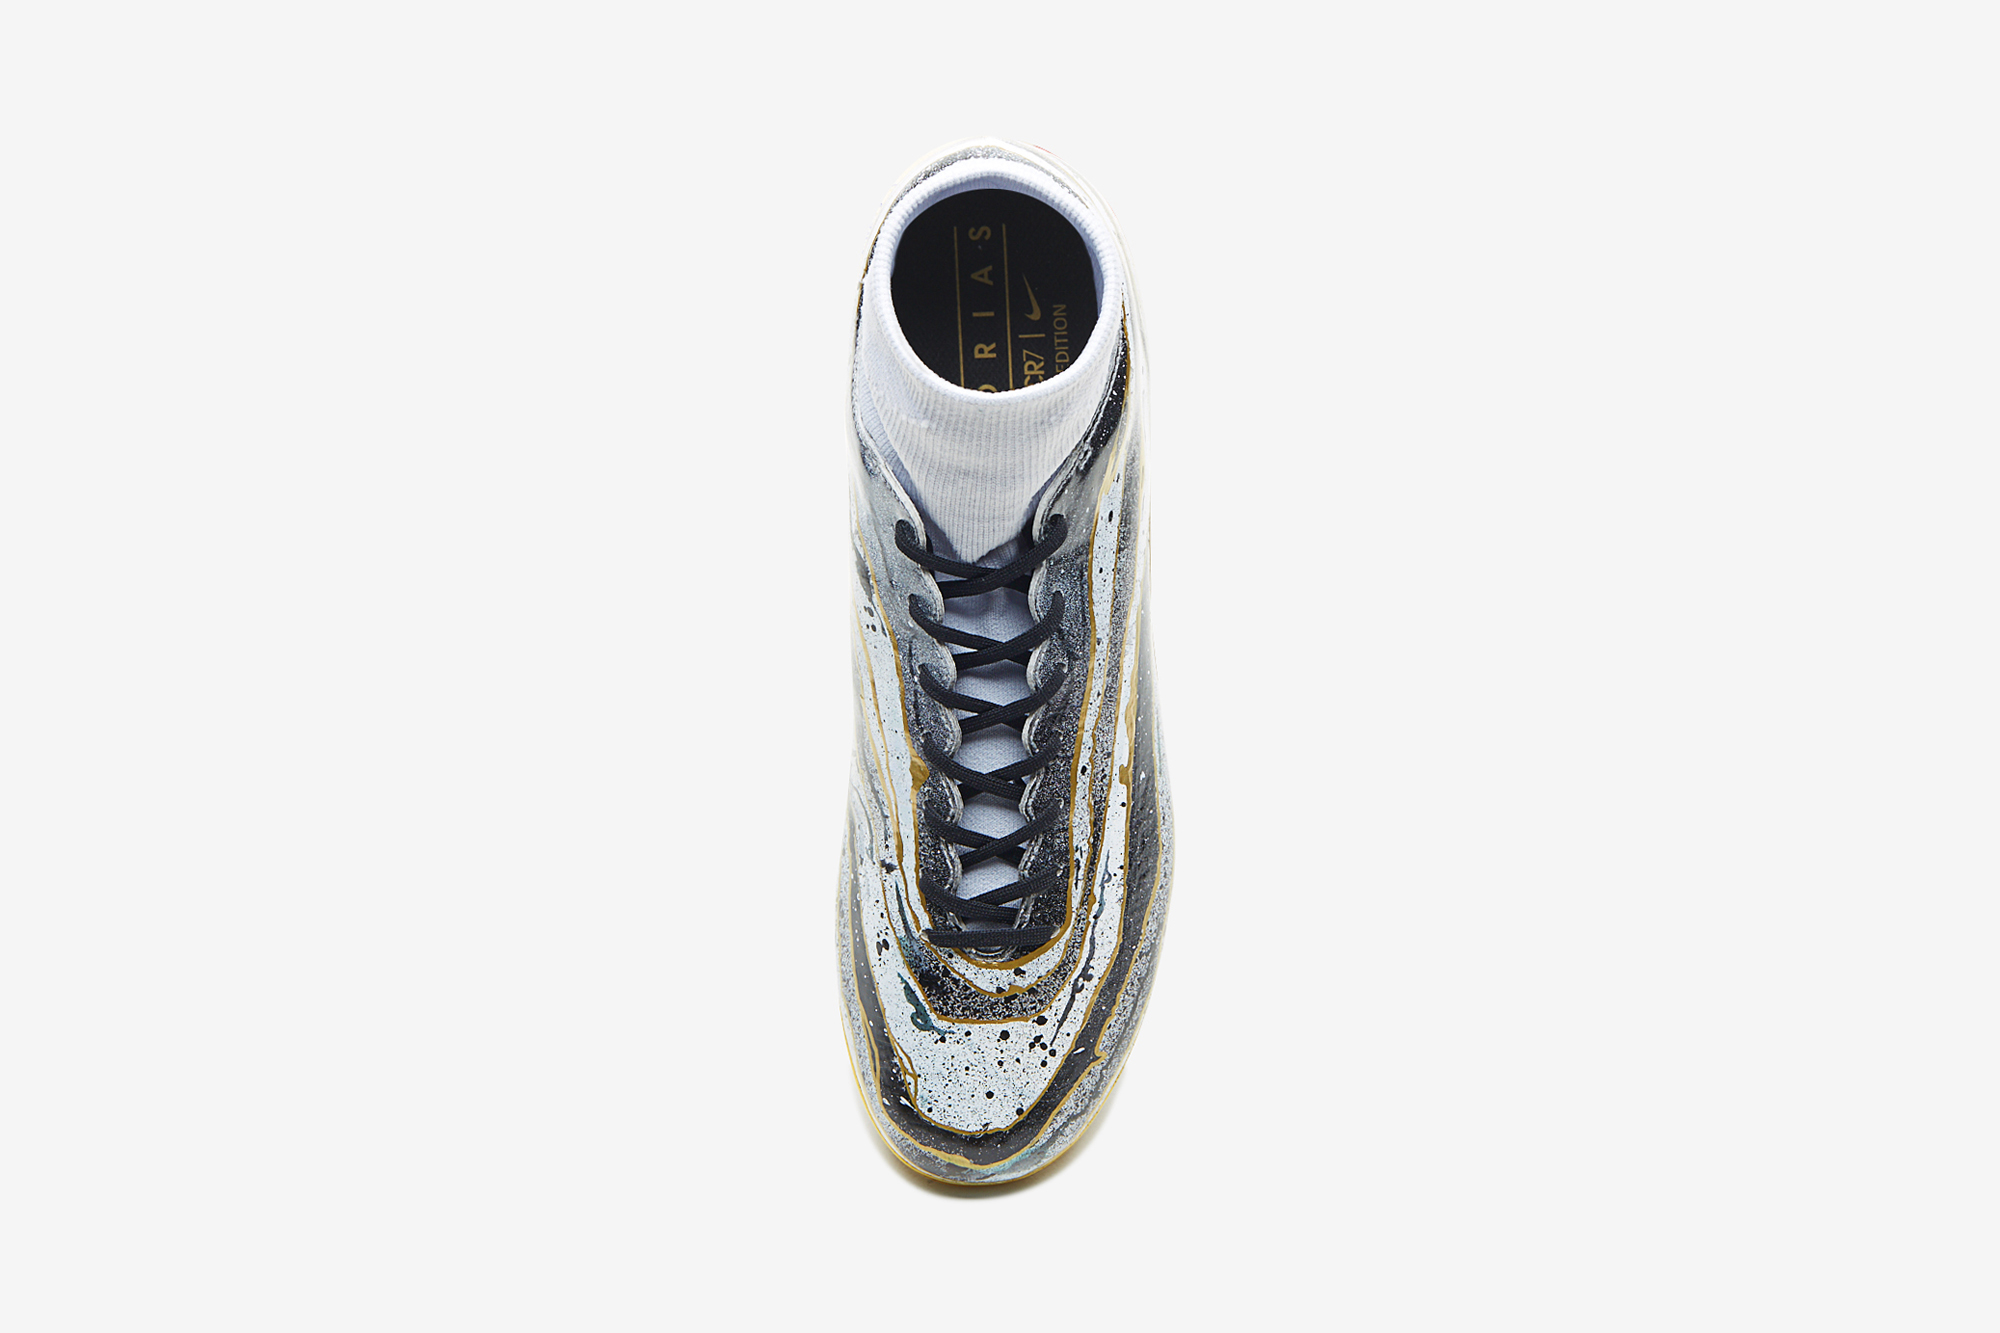 J1340_2017_7_22_NIKE_CR7_Cultural_Exhibition_Product_Shoot_003.jpg